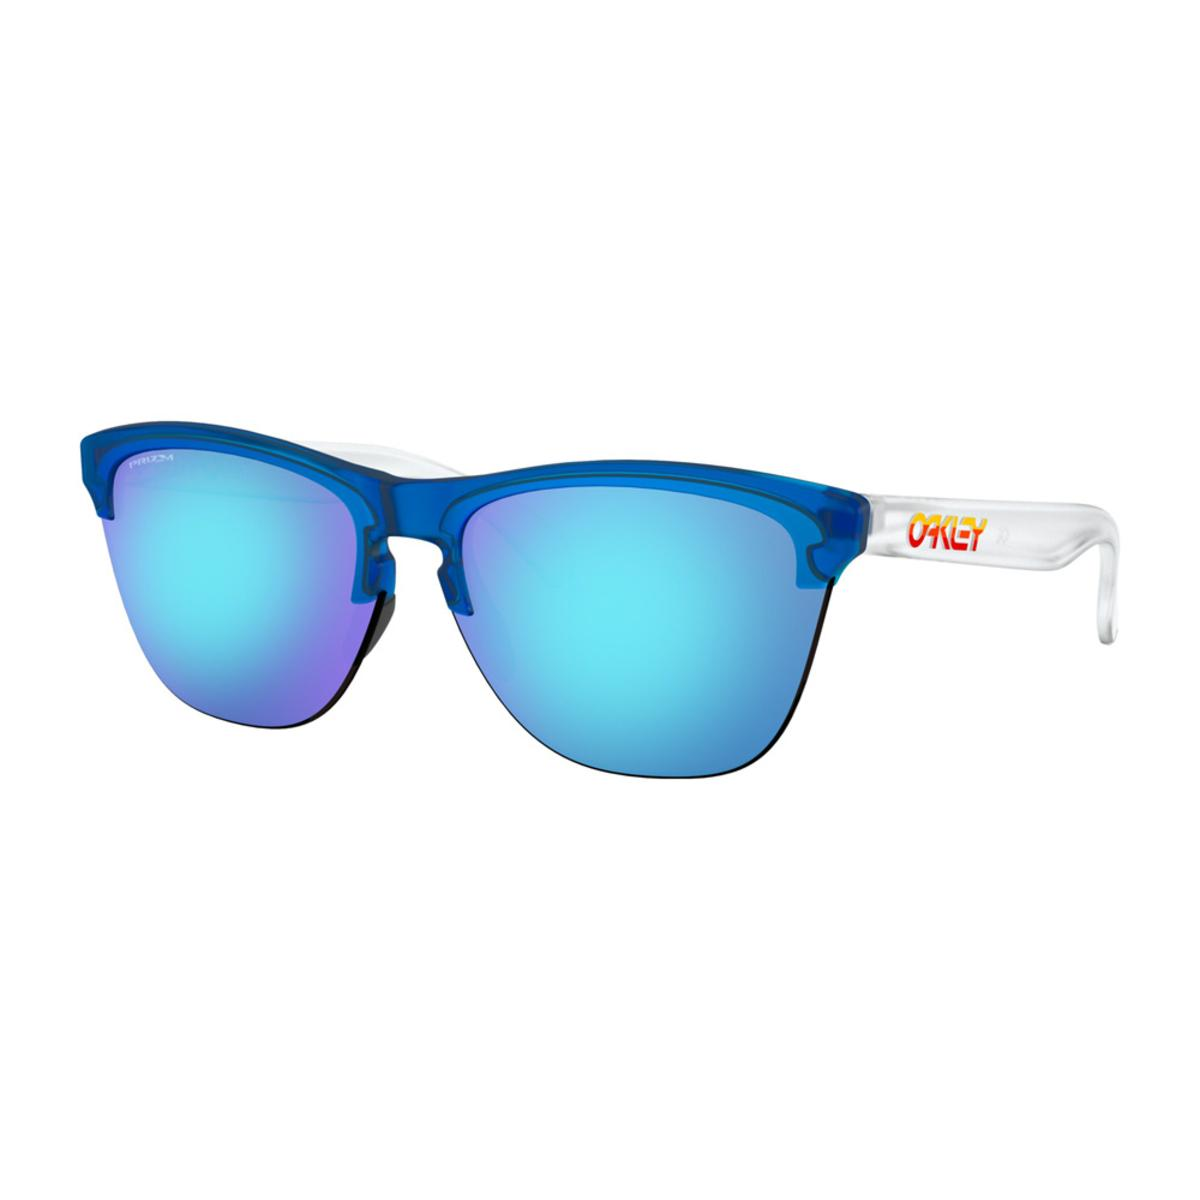 4150a8ef1e Oakley Frogskins Lite Grips Collection Translucent Sunglasses w Prizm  Sapphire - The Warming Store